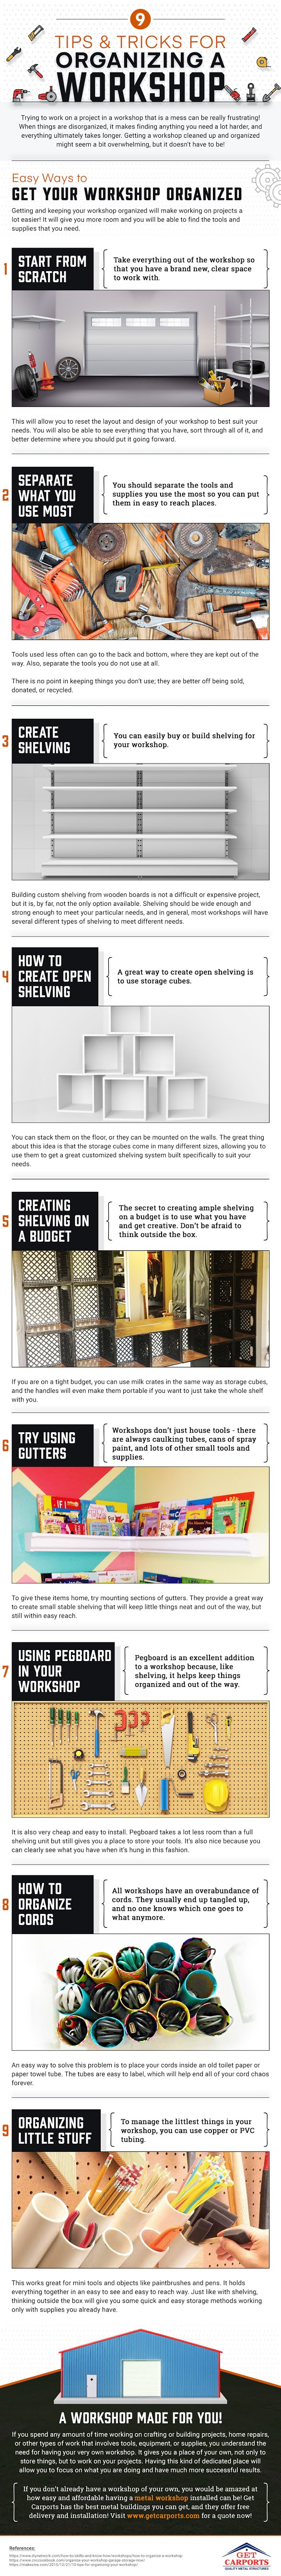 9 Tips and Tricks for Organizing a Workshop #infographic #workshop building construction #Workshop #Organizing #infographics